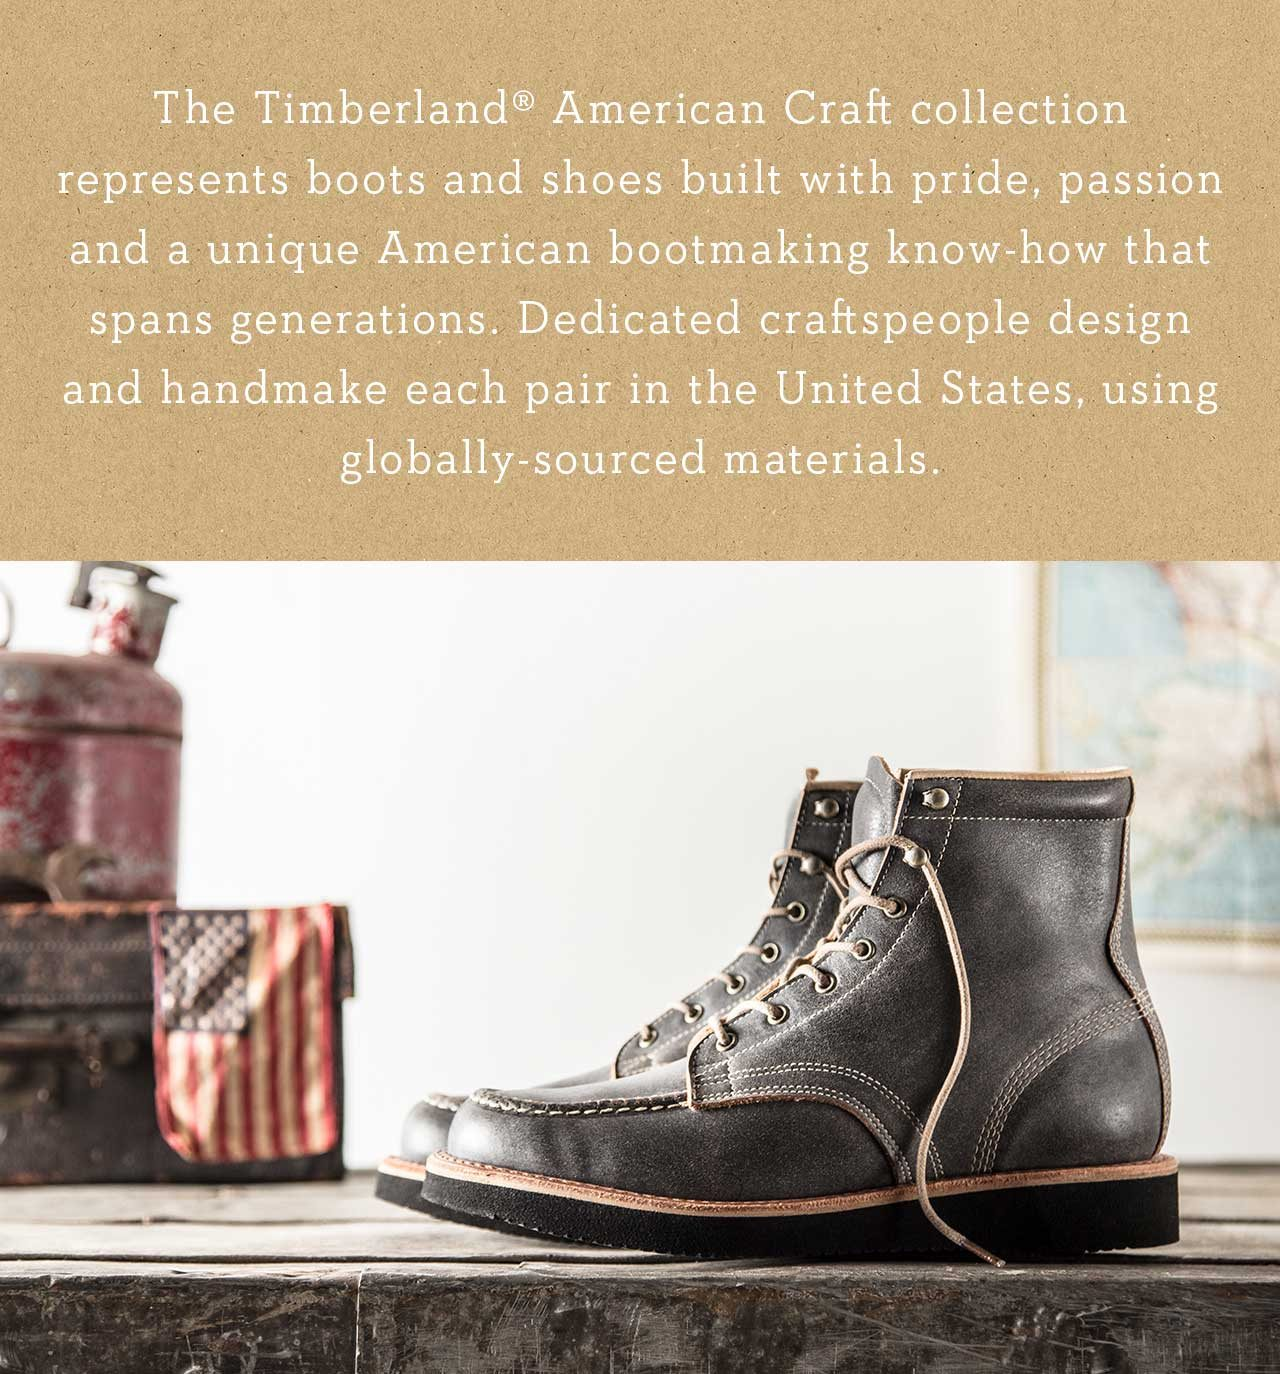 tal vez Rebotar Retirado  Introducing our Timberland® American Craft Collection. - Timberland.com  Email Archive